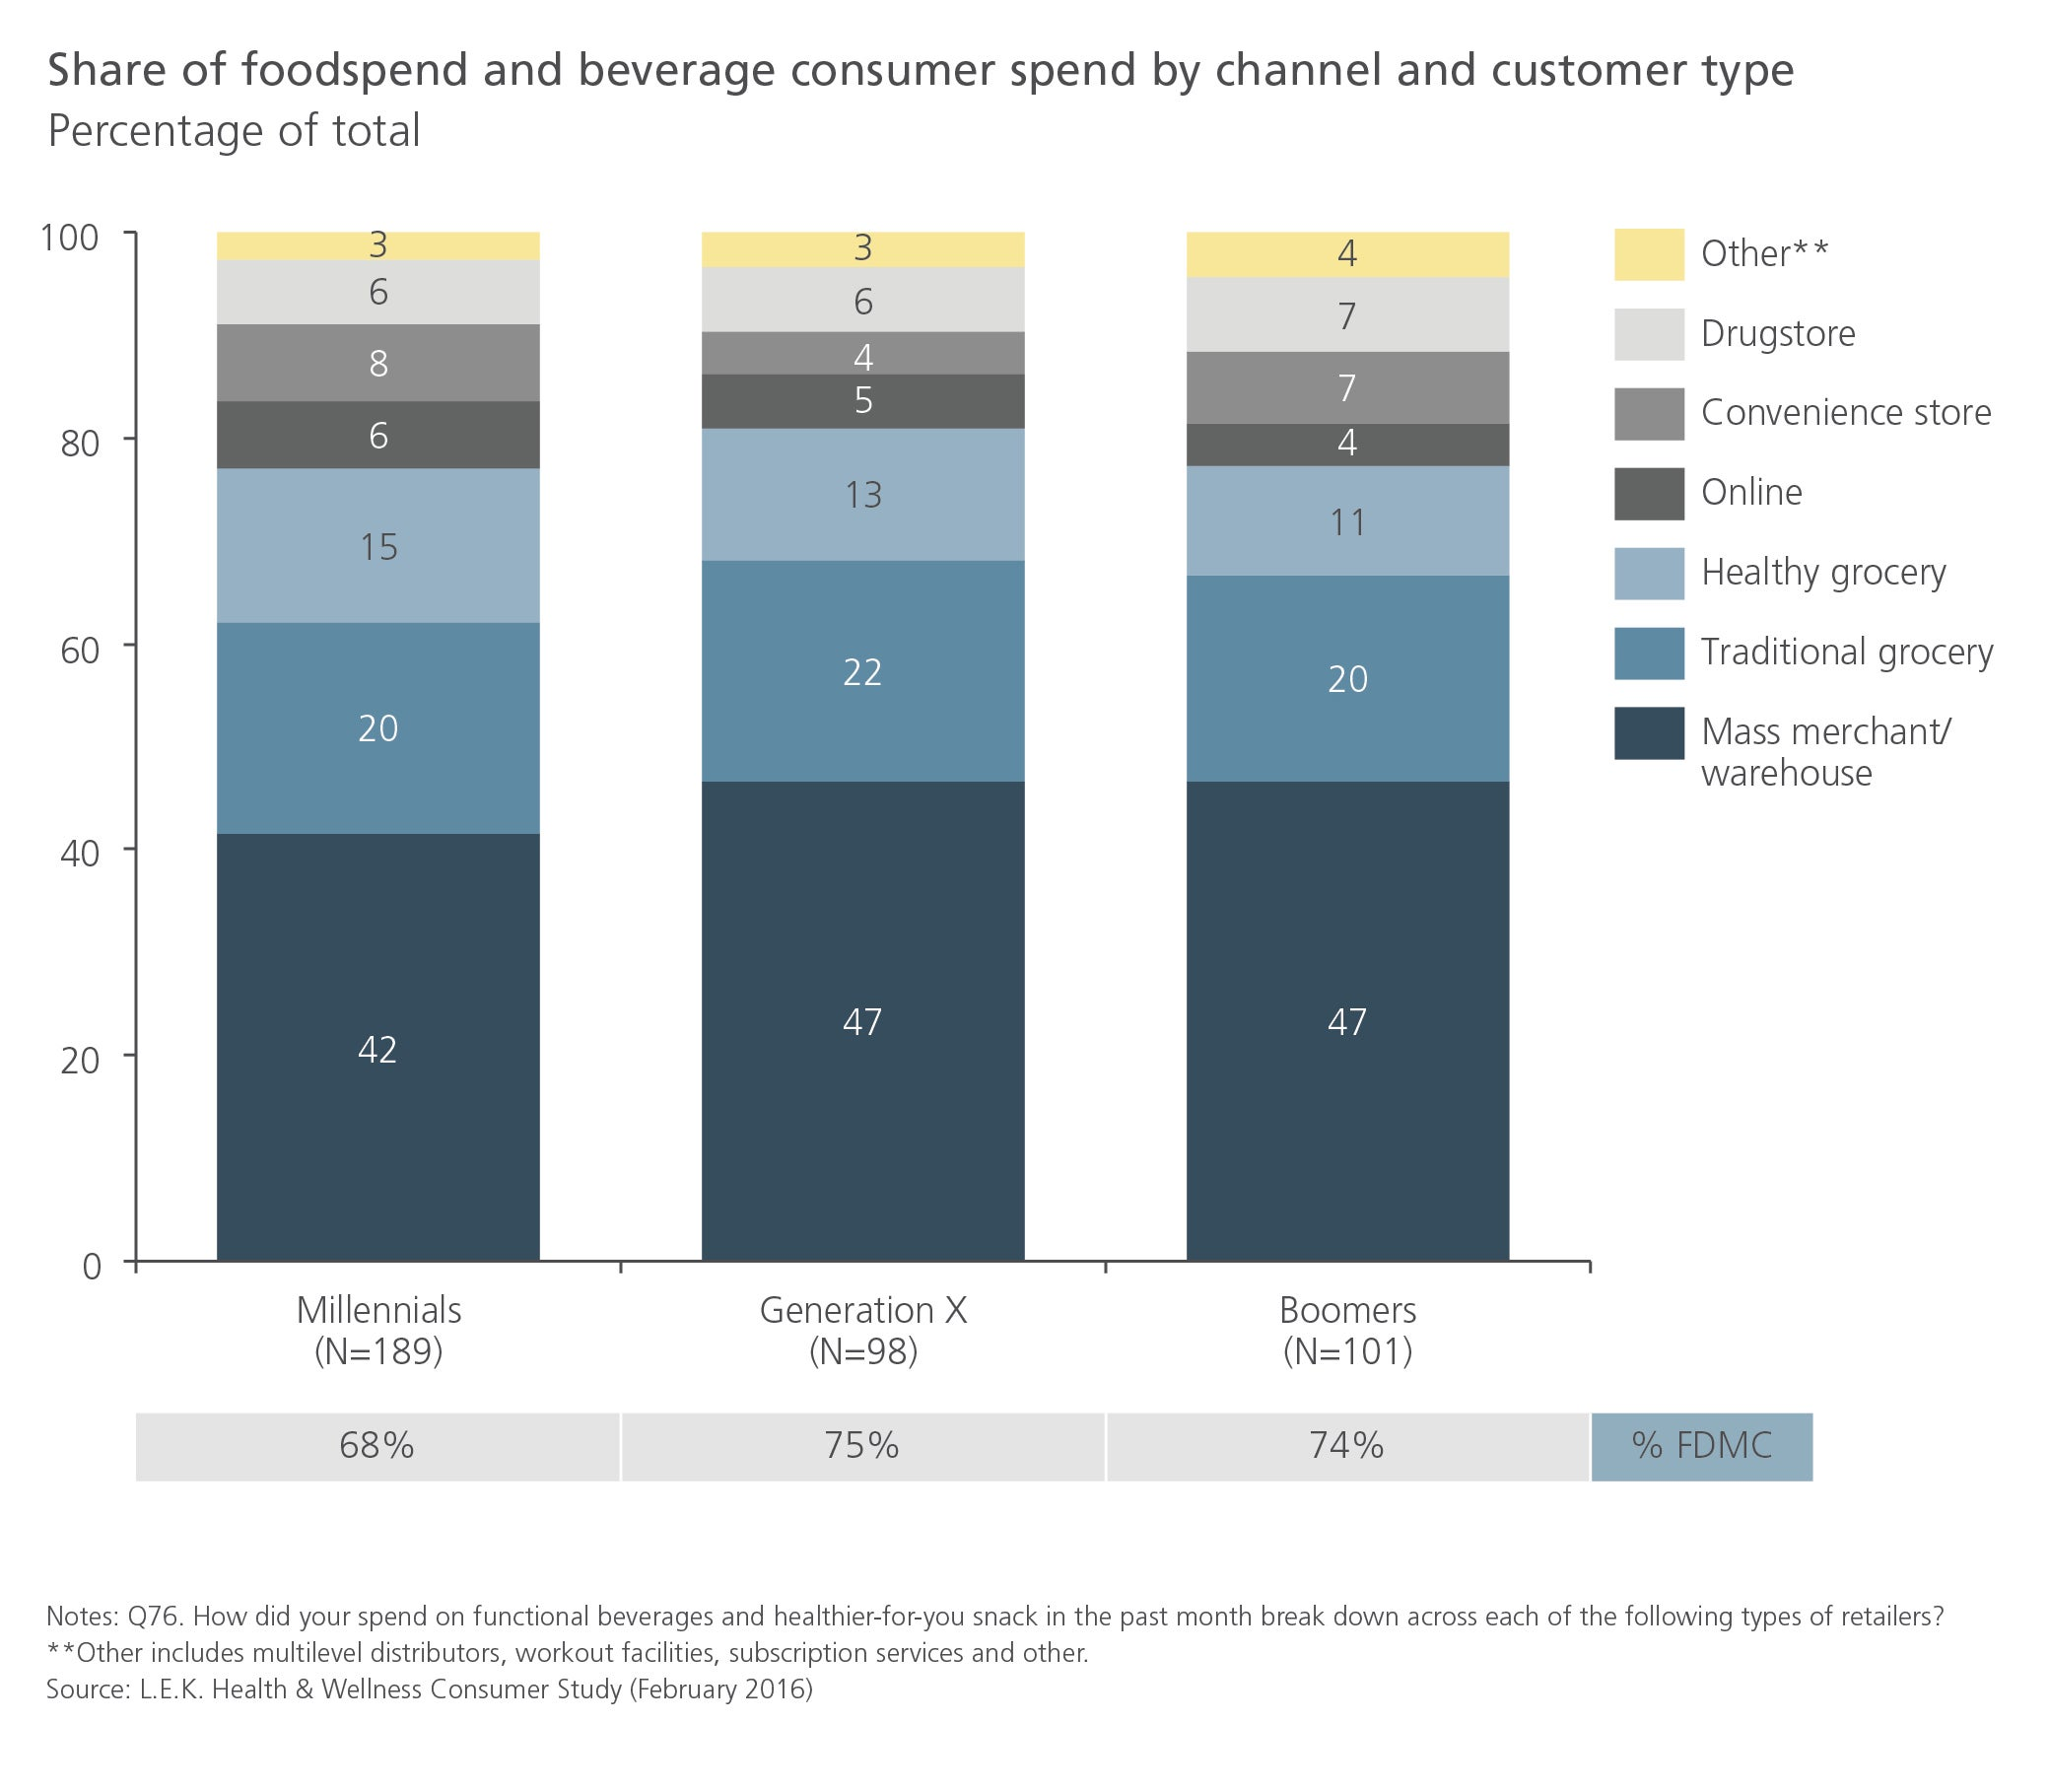 Share of foodspend and beverage consumer spend by channel and customer type